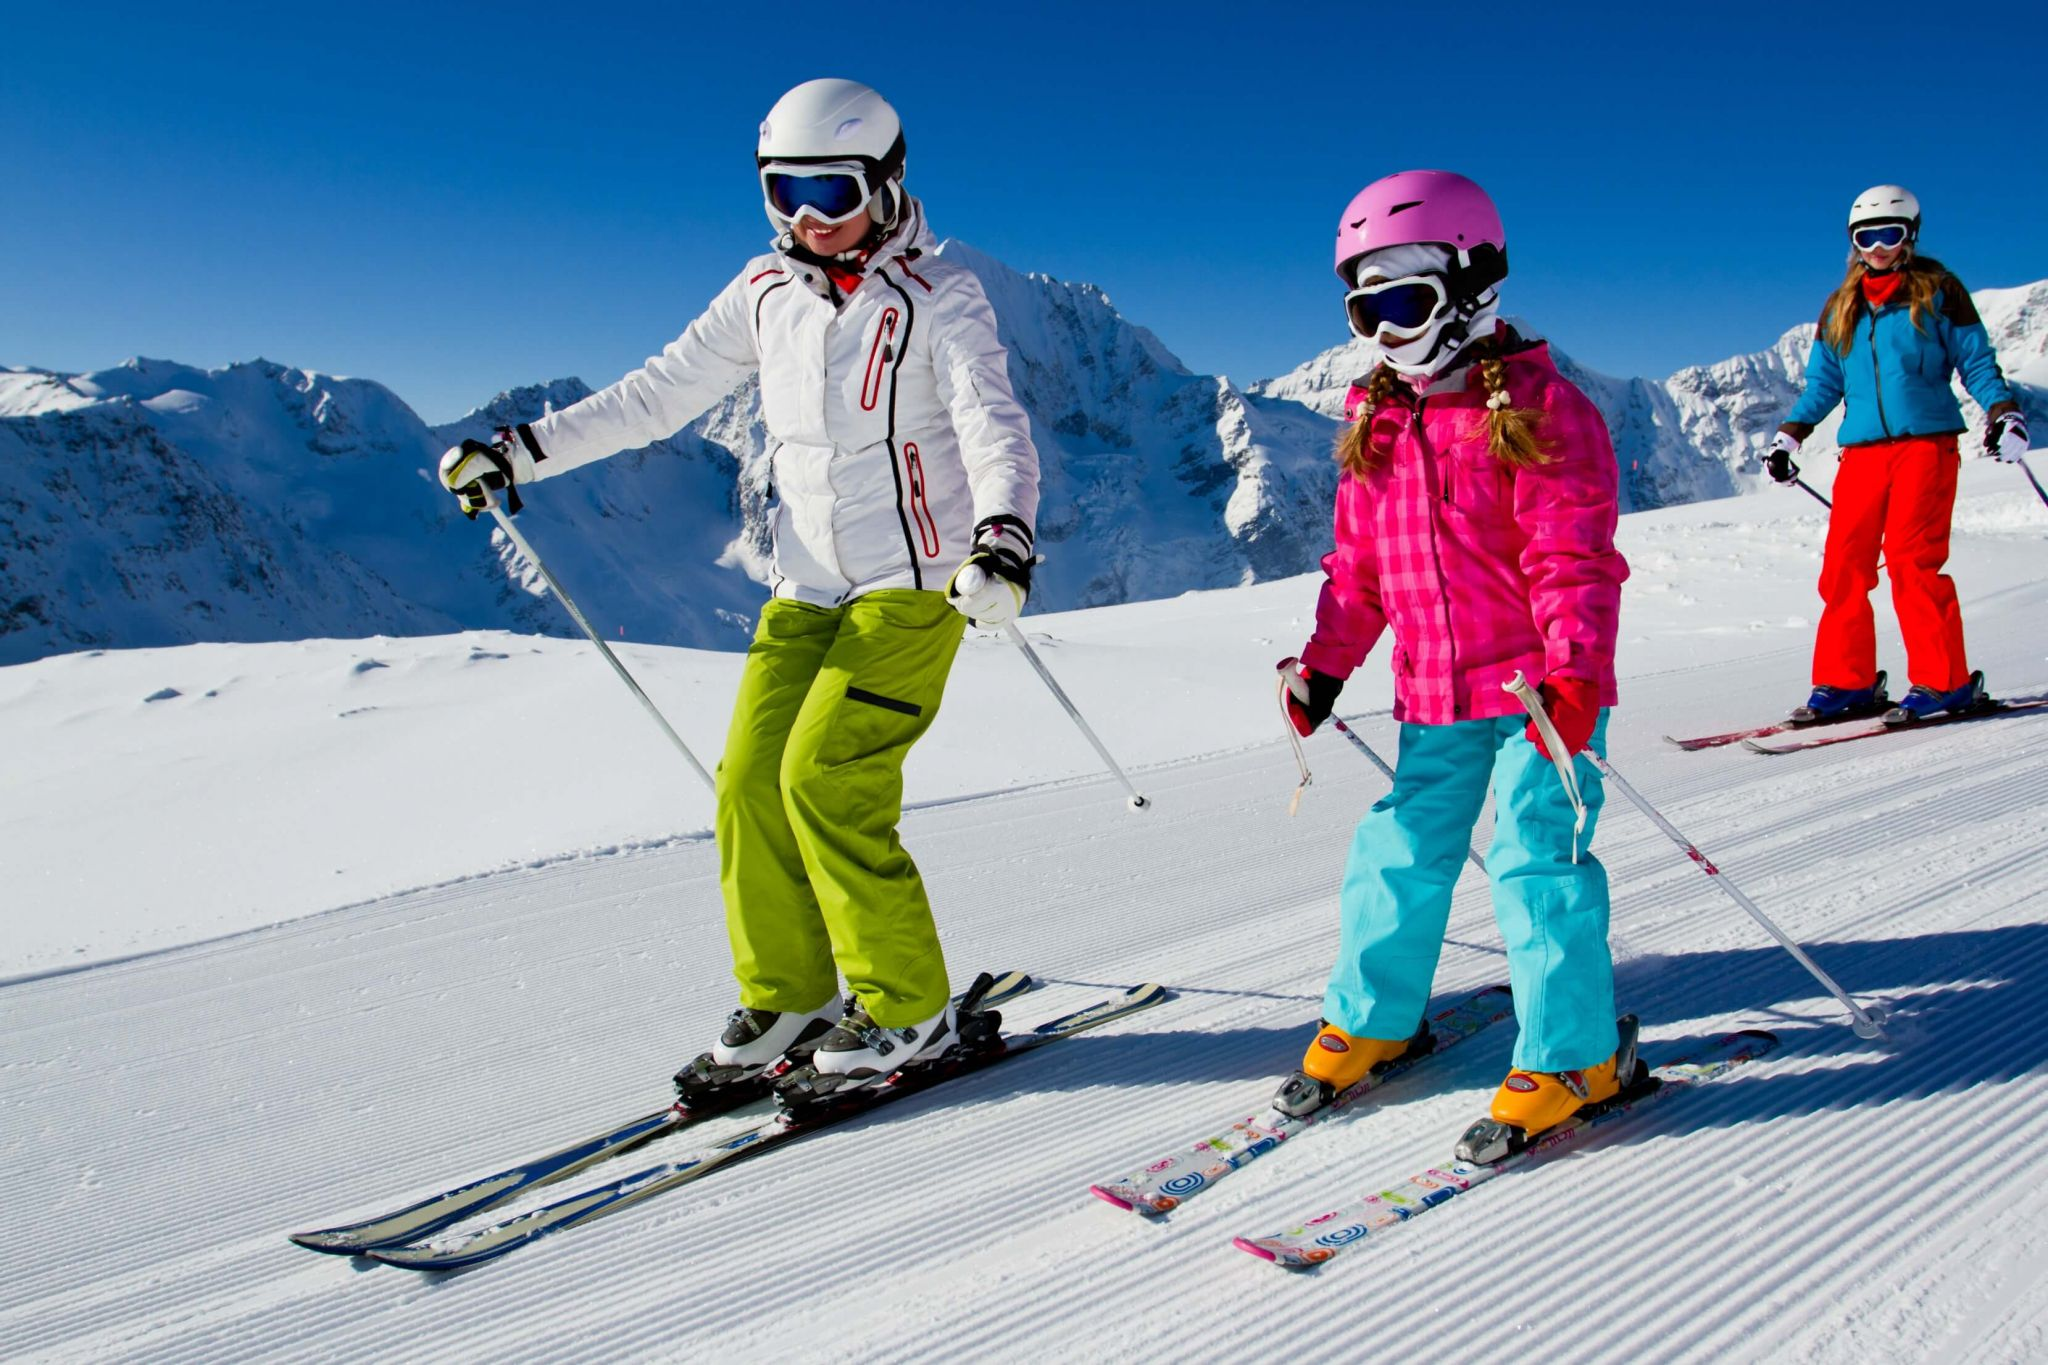 ski holiday with kids - family skiing on the piste